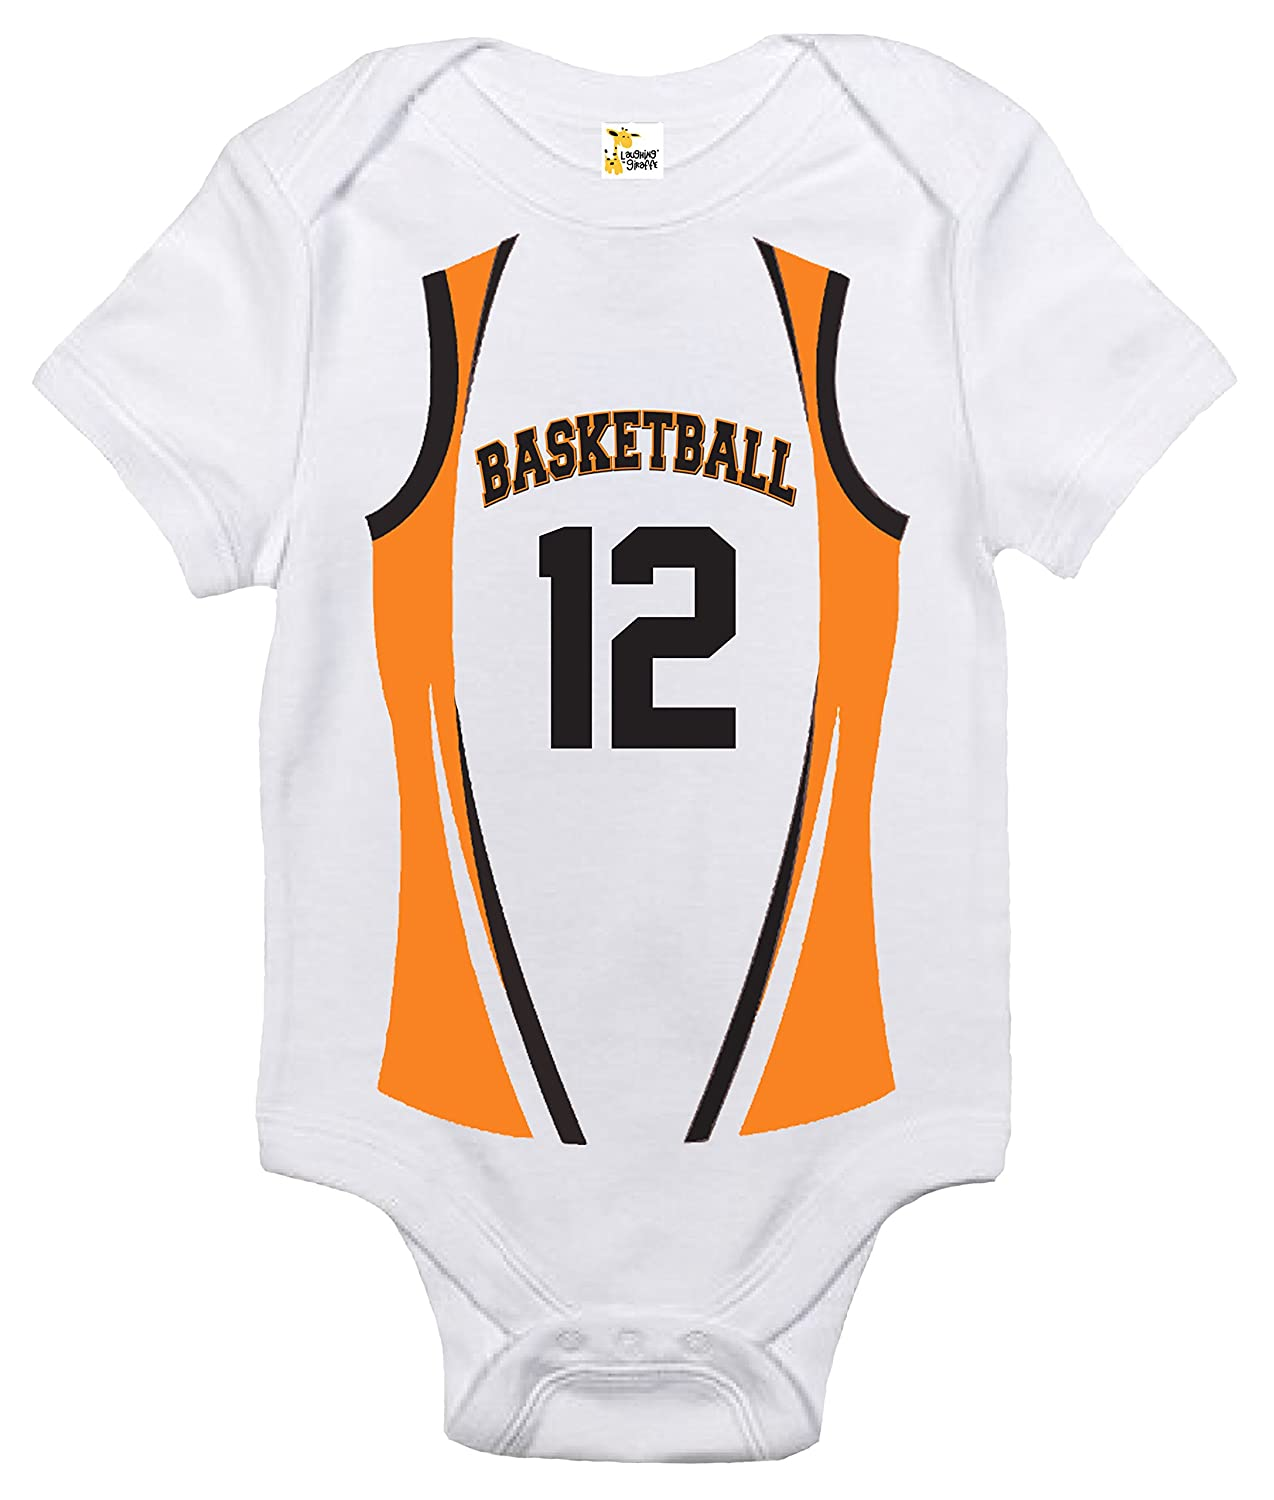 b8f4f741d7f4 Amazon.com  Basketball Custom Personalized Front and Back Baby Bodysuit  Cute Baby Clothes  Clothing